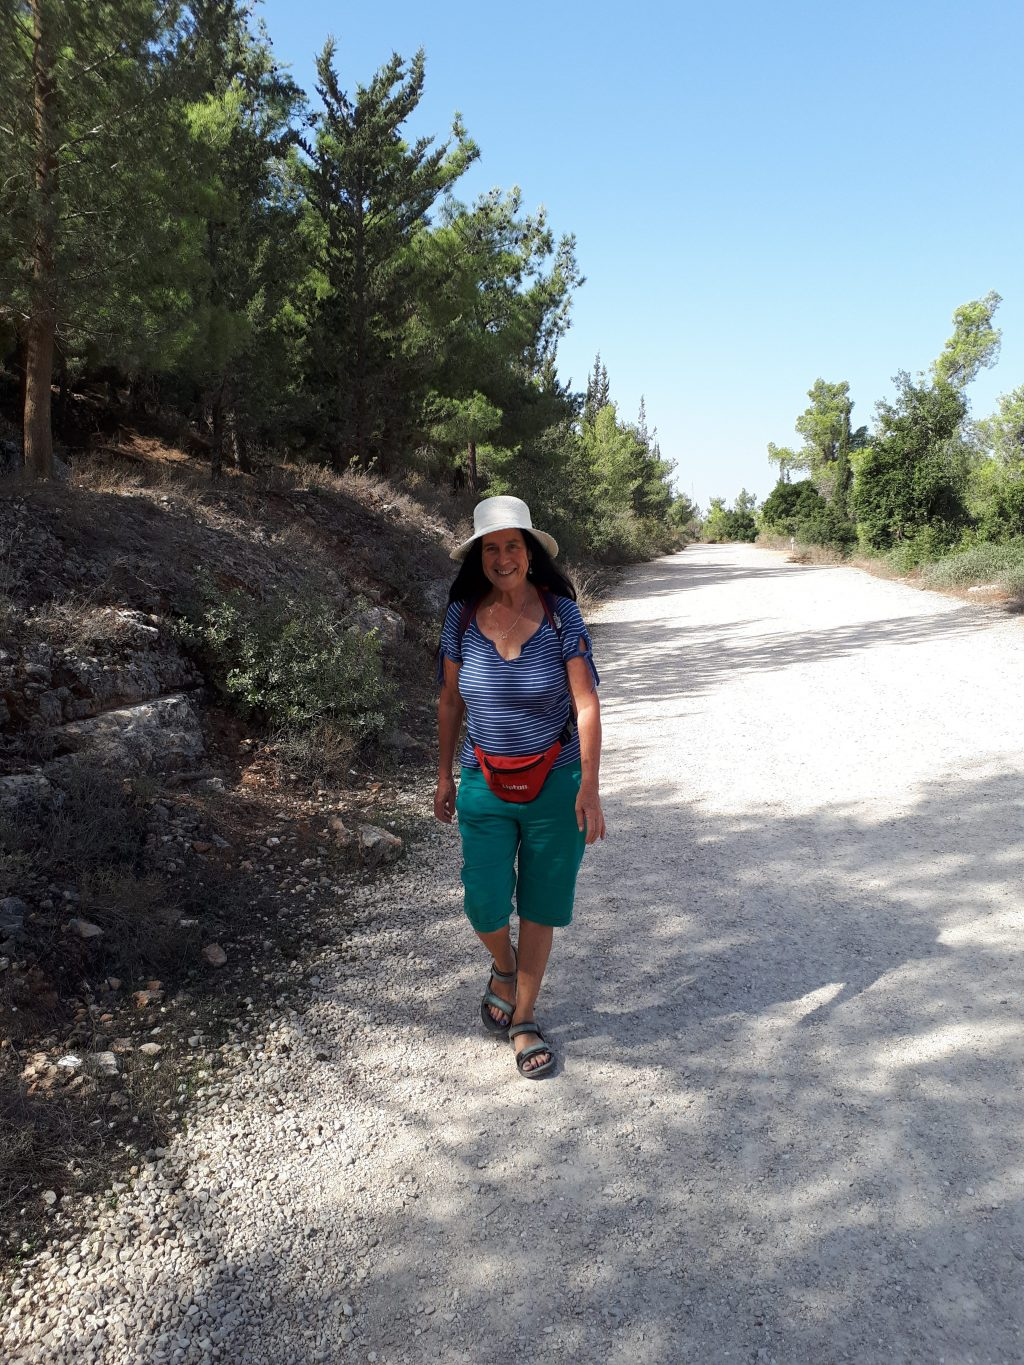 Walking in Har Eitan. Excersicing in the free air